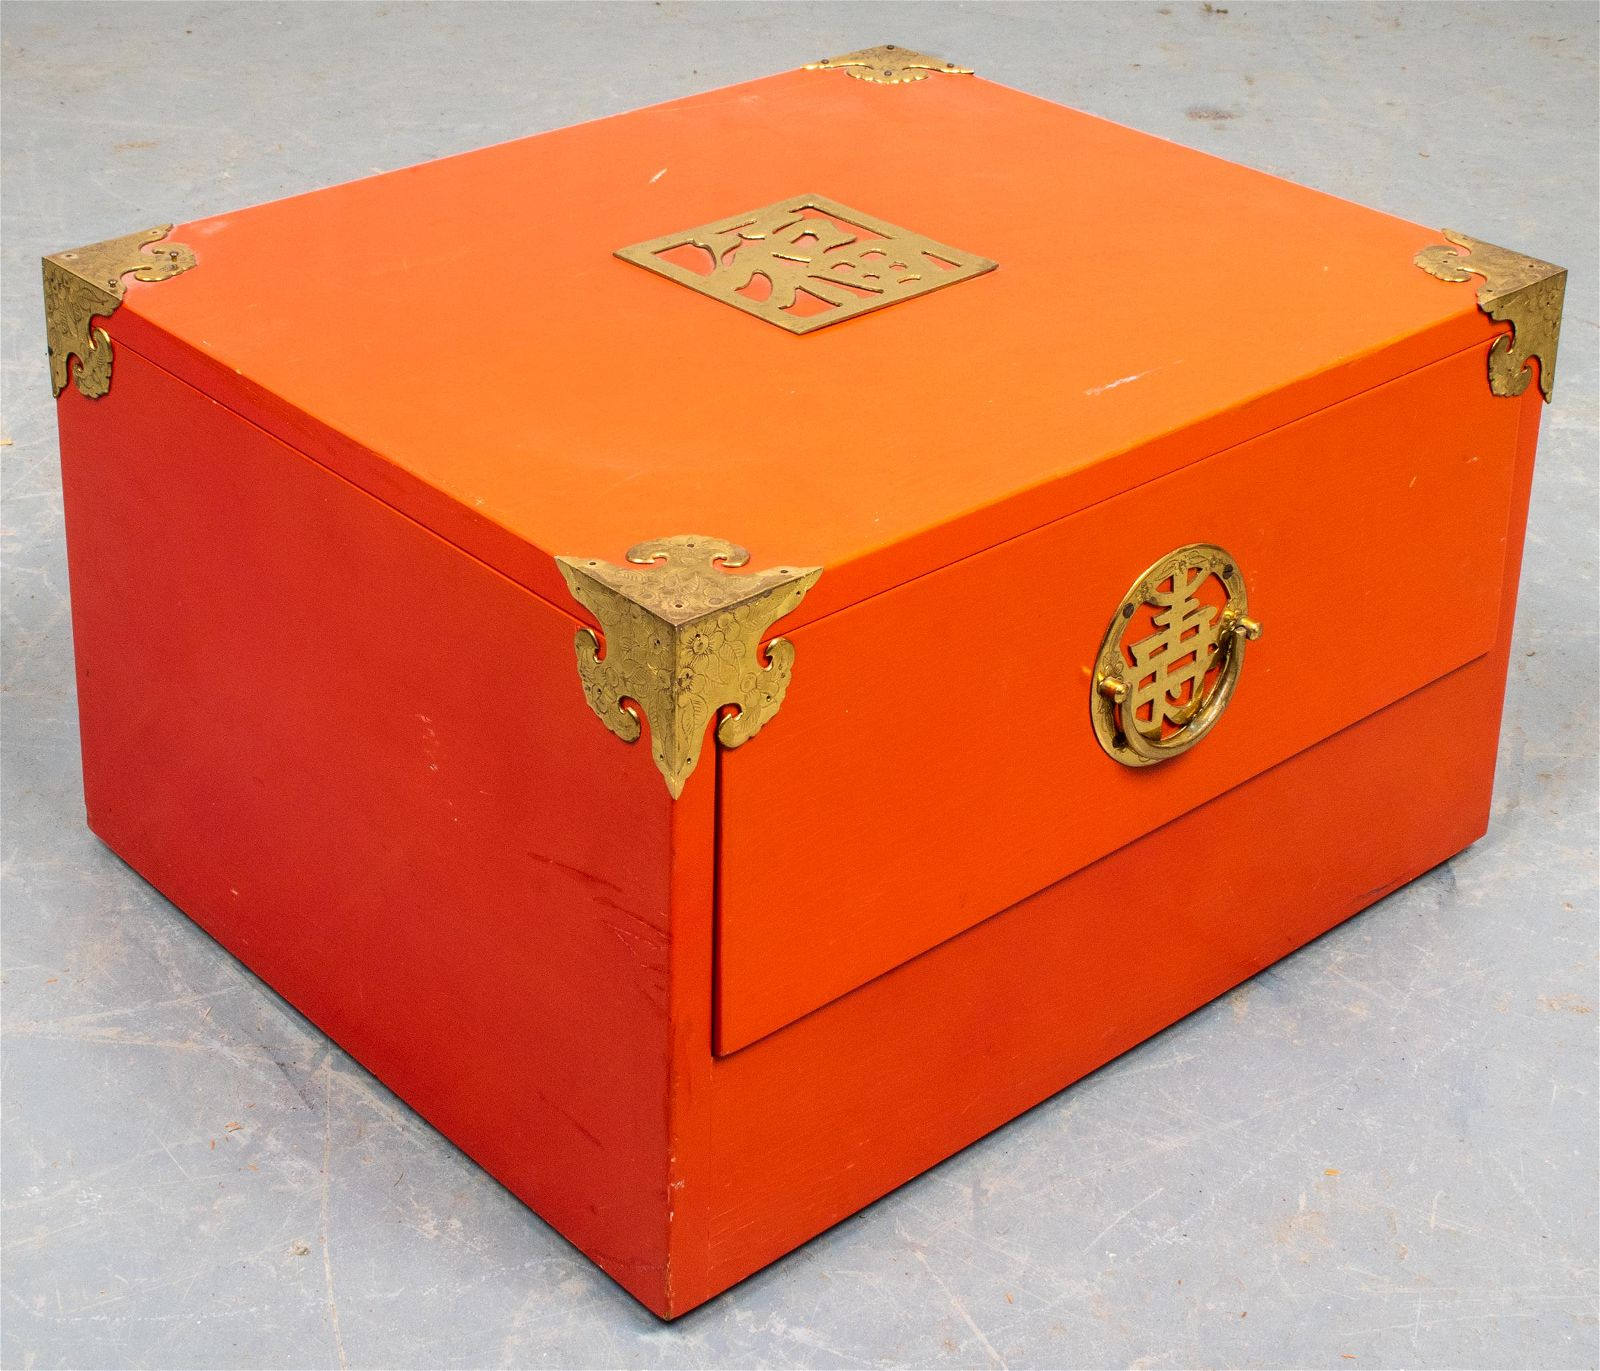 Japanese-Manner Red Lacquer Storage Box